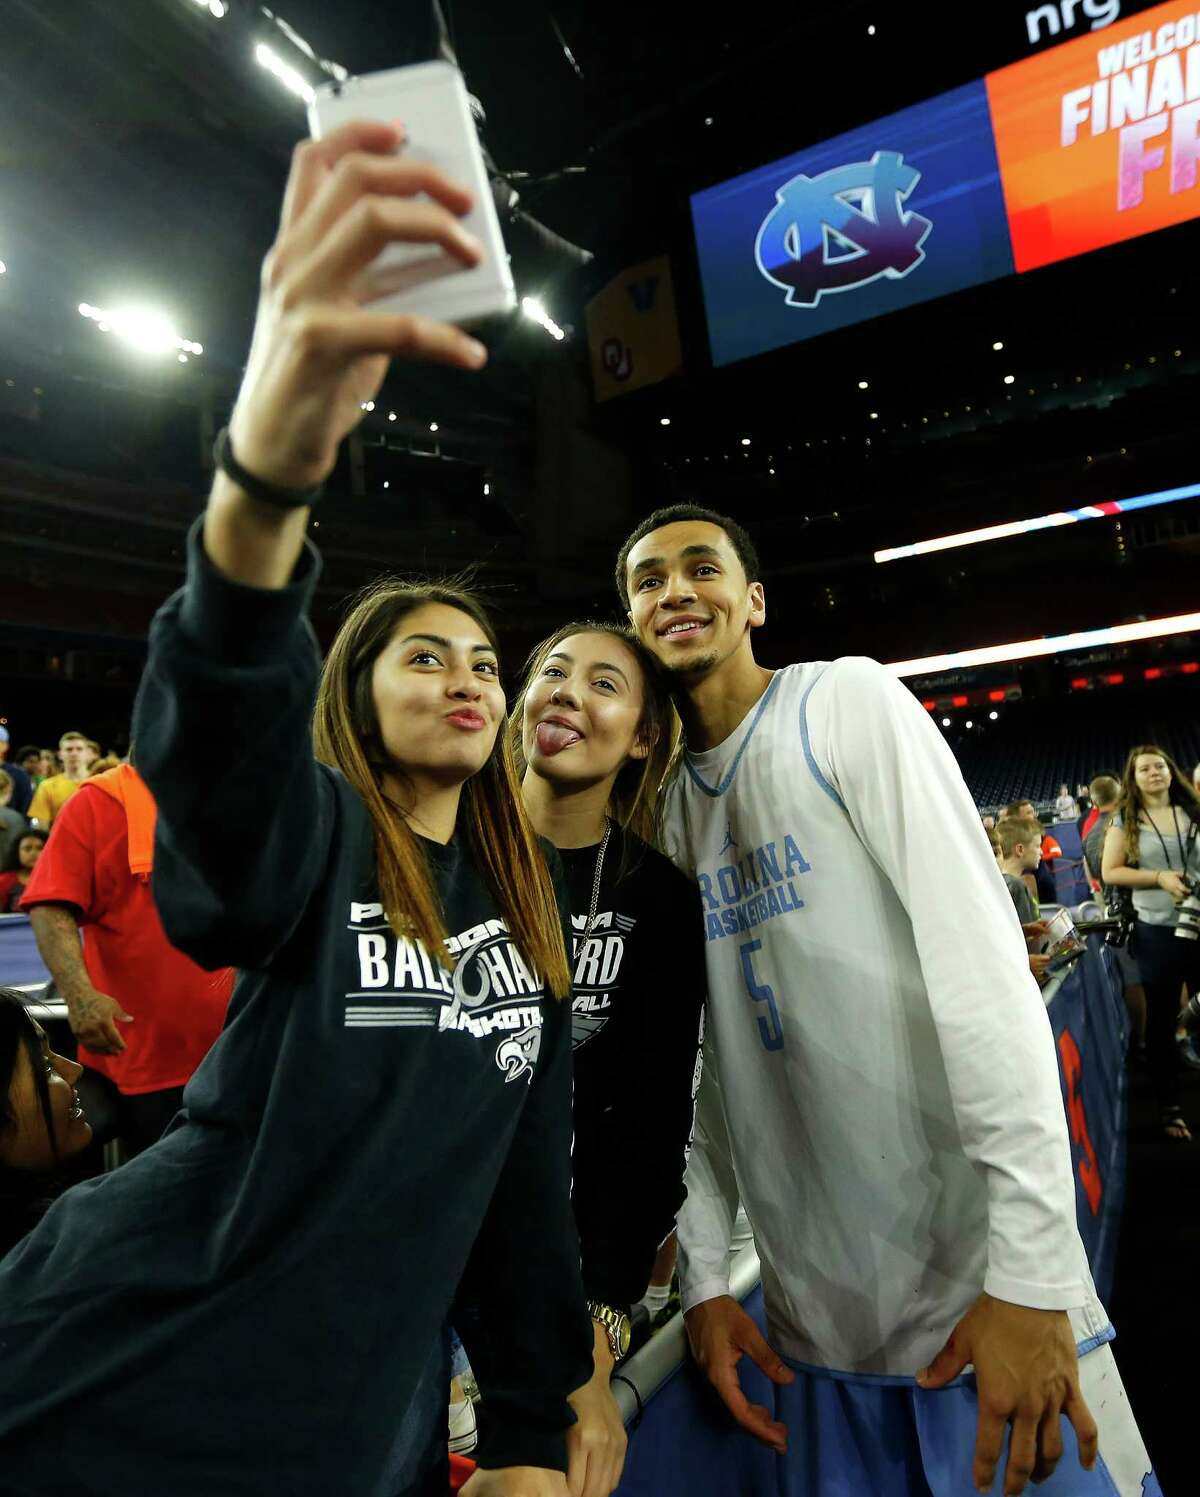 Girls take a selfie with North Carolina guard Marcus Paige (5) after UNC's NCAA Final Four practice at NRG Stadium, Friday, April 1, 2016, in Houston.